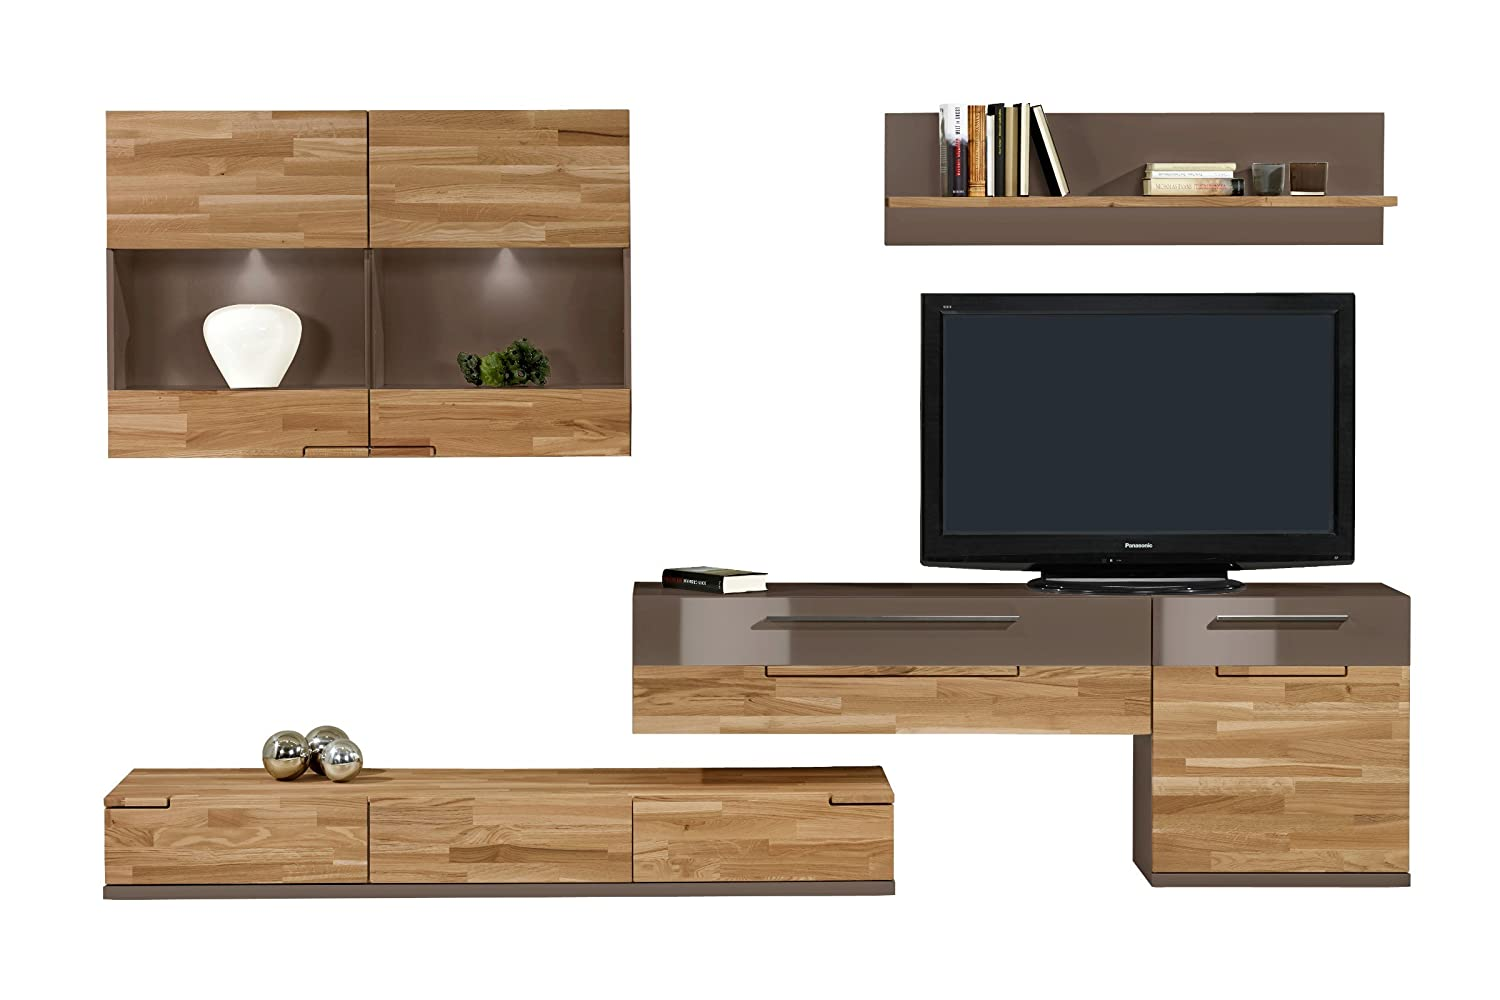 wohnwand feel ii wohnzimmerwand tv wand massivholz eiche by arte m farbe eiche cubanit kaufen. Black Bedroom Furniture Sets. Home Design Ideas